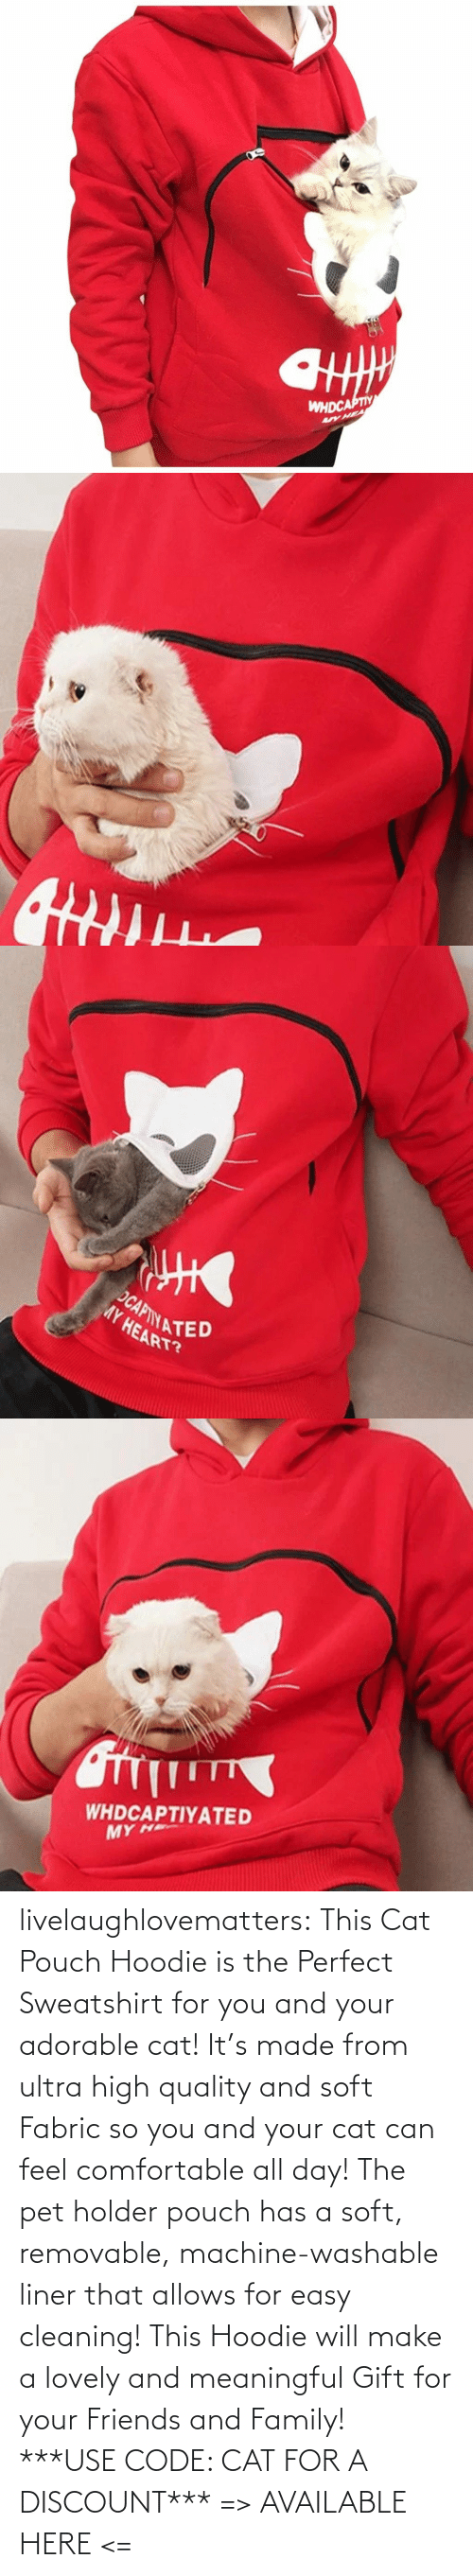 sweatshirt: livelaughlovematters: This Cat Pouch Hoodie is the Perfect Sweatshirt for you and your adorable cat! It's made from ultra high quality and soft Fabric so you and your cat can feel comfortable all day! The pet holder pouch has a soft, removable, machine-washable liner that allows for easy cleaning! This Hoodie will make a lovely and meaningful Gift for your Friends and Family!  ***USE CODE: CAT FOR A DISCOUNT*** => AVAILABLE HERE <=